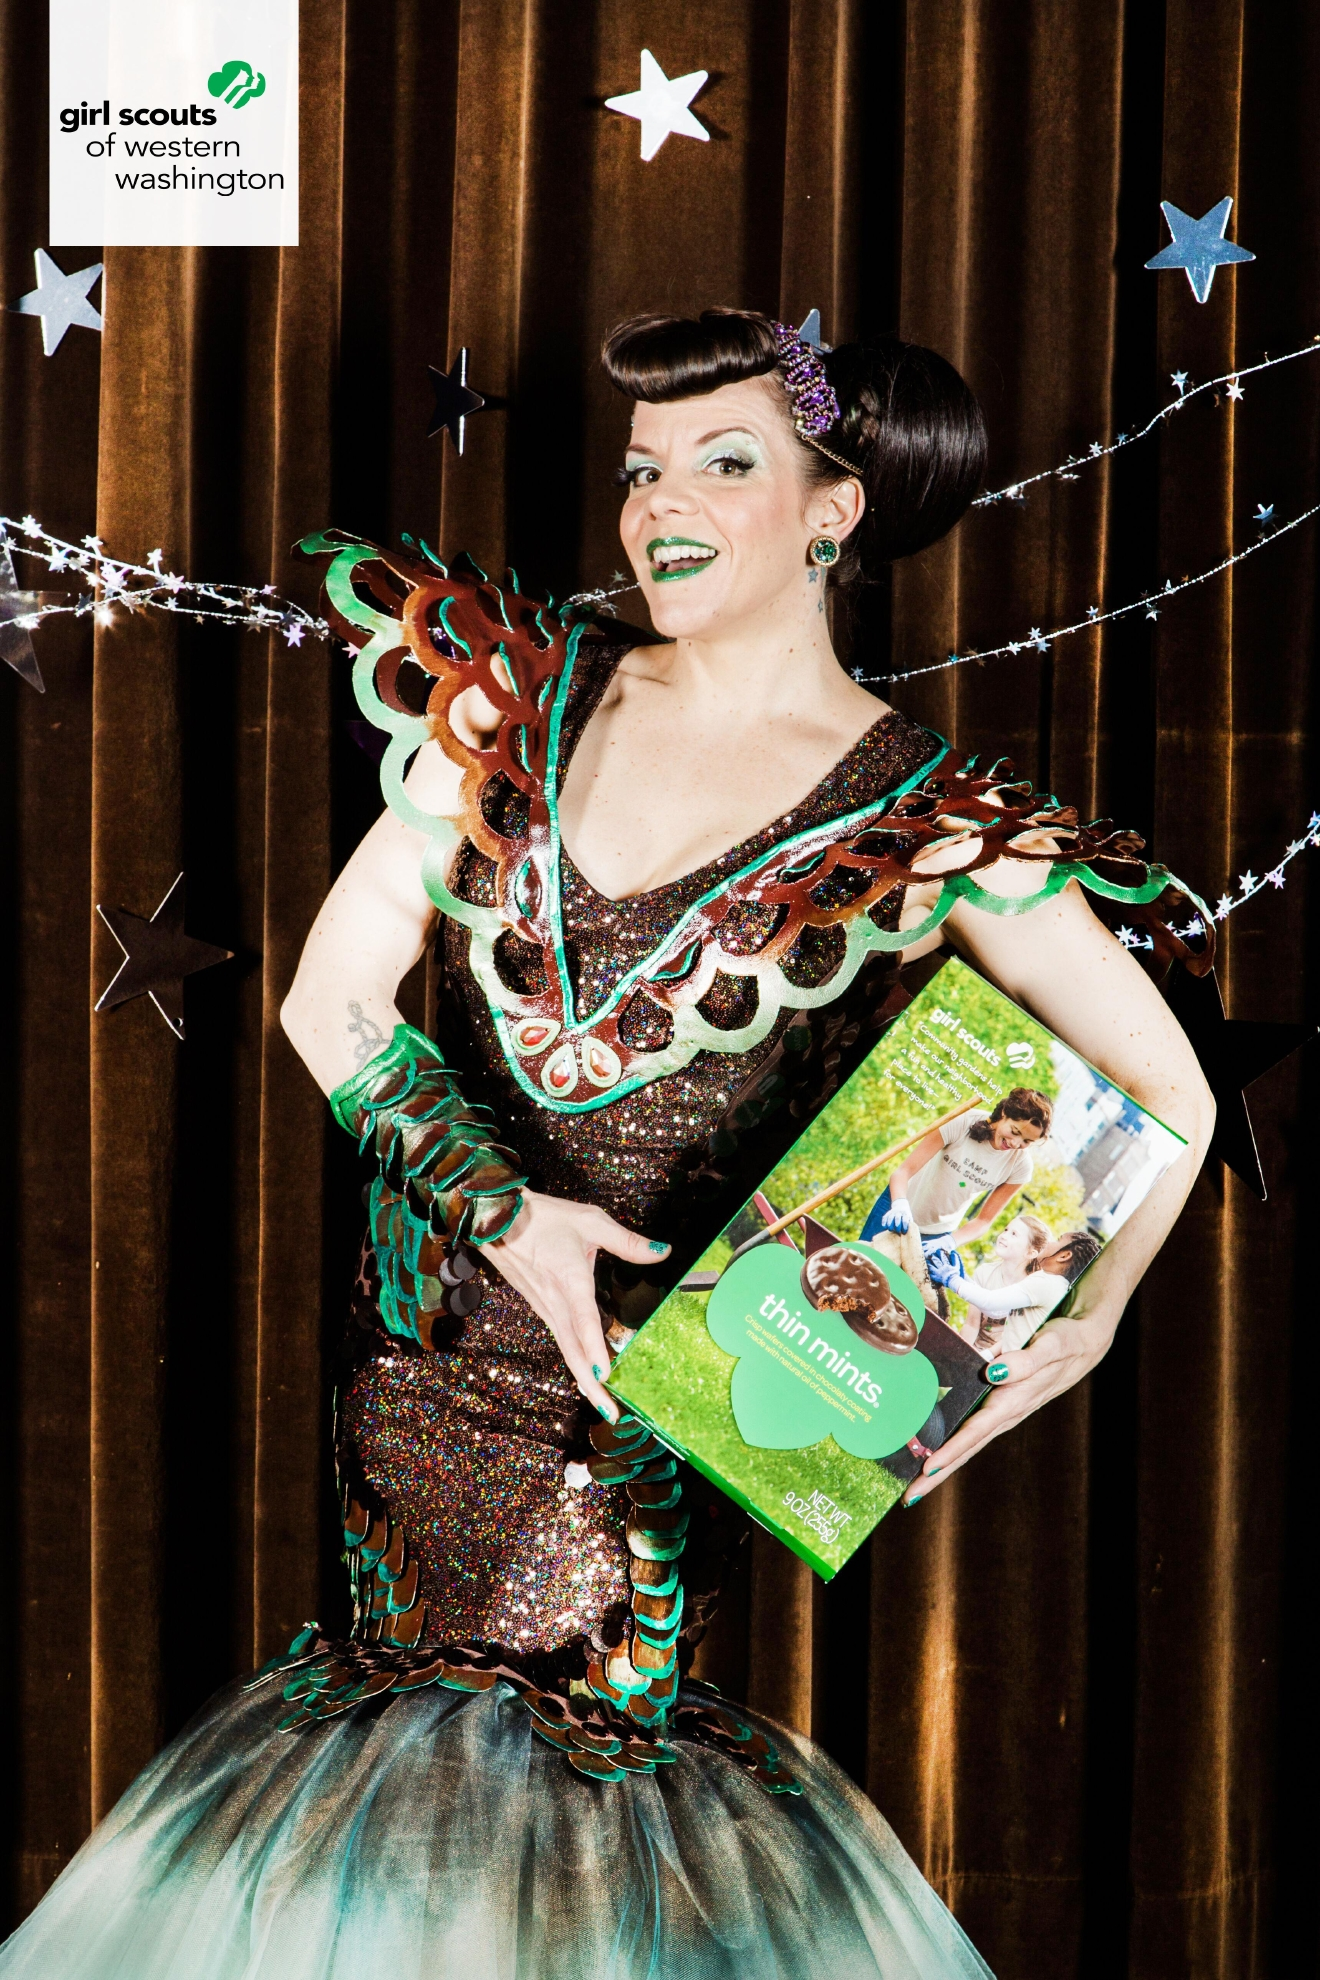 Designer Jamie Von Stratton is known for her wearable art and functional fashion but her Thin Mint Galaxy Goddess Gown might be her most amazing piece yet. Inspired by the multitude of STEM-related activities that the Girl Scouts are involved in, the Thin Mint Galaxy Goddess Gown has mermaid scales cut out of Thin Mint boxes and spray painted on one side. Photo Credit: David Jaewon Oh